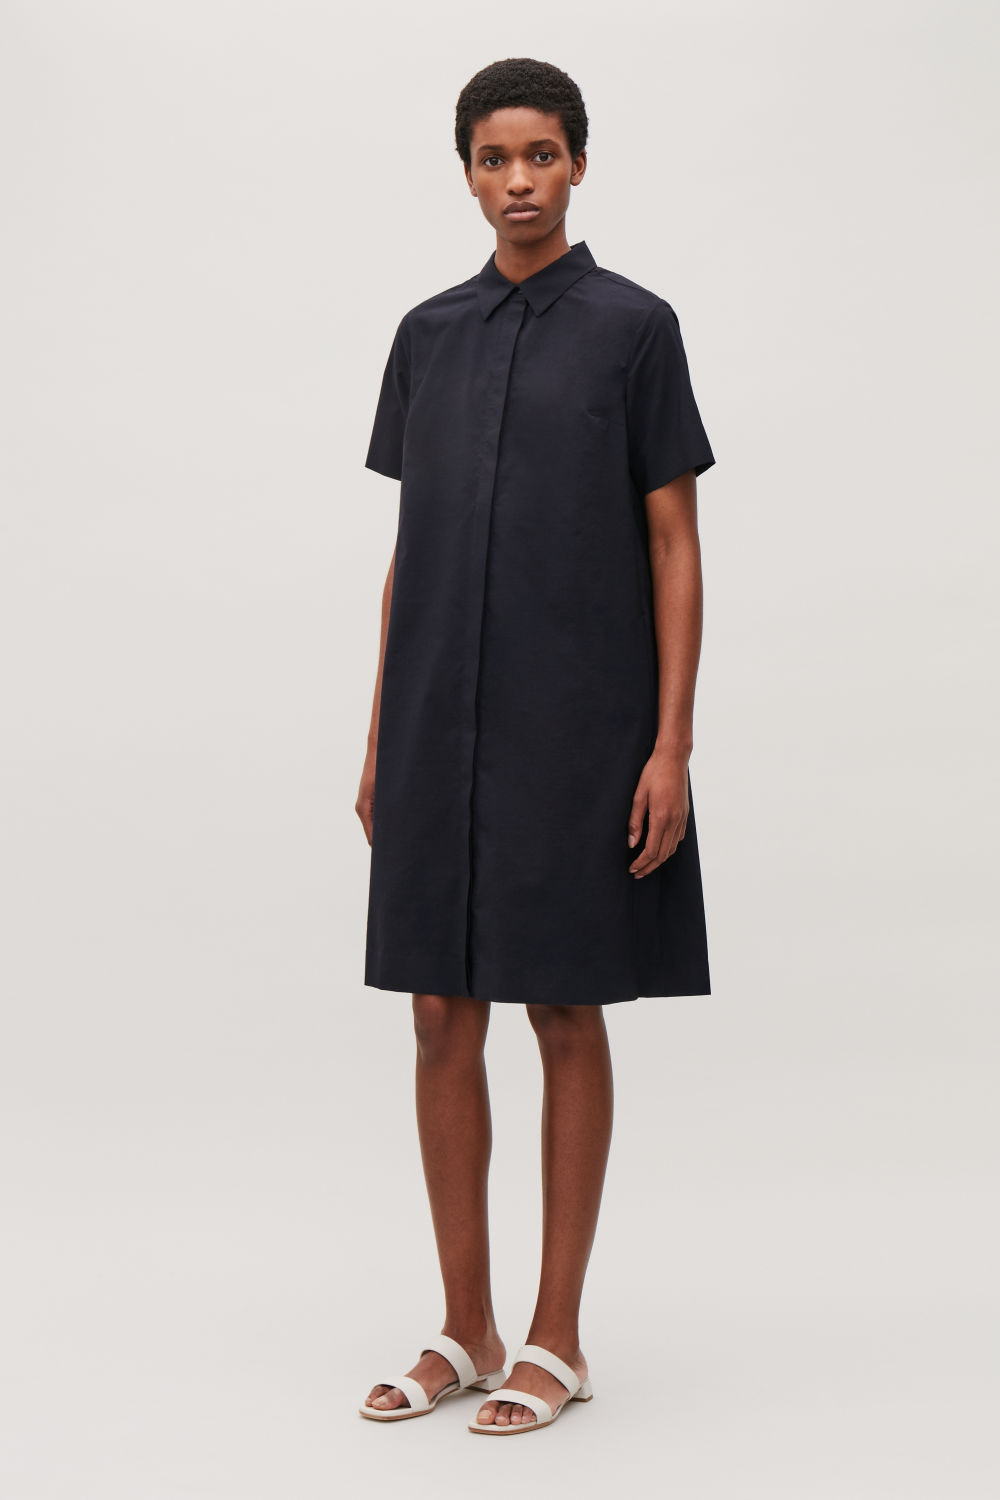 COS PLEATED SHORT-SLEEVED DRESS,Navy